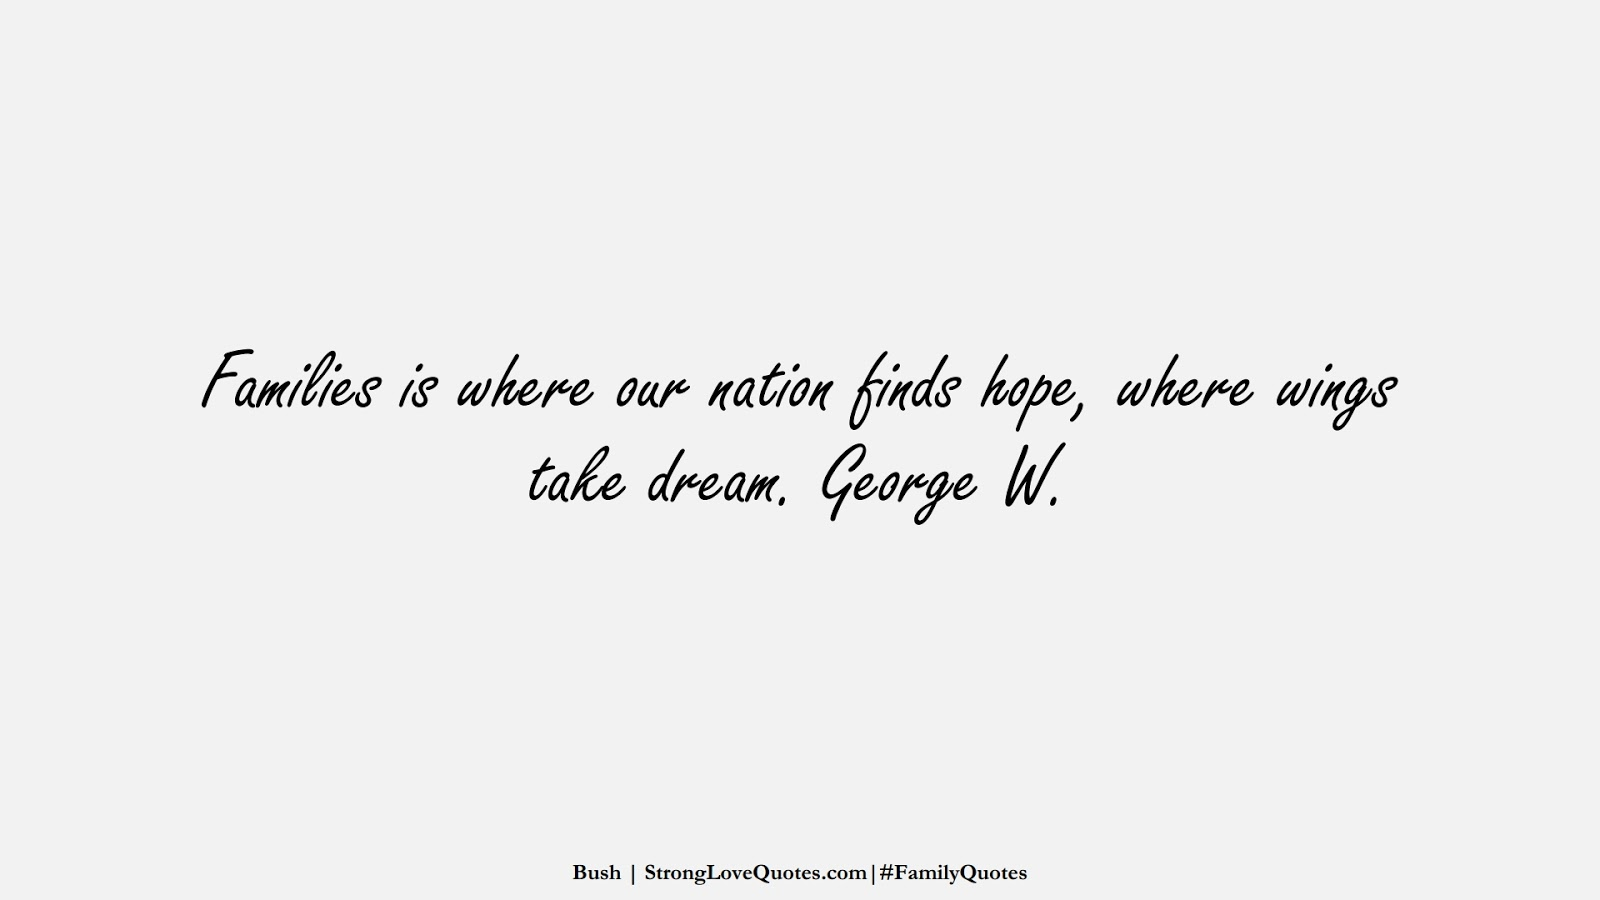 Families is where our nation finds hope, where wings take dream. George W. (Bush);  #FamilyQuotes